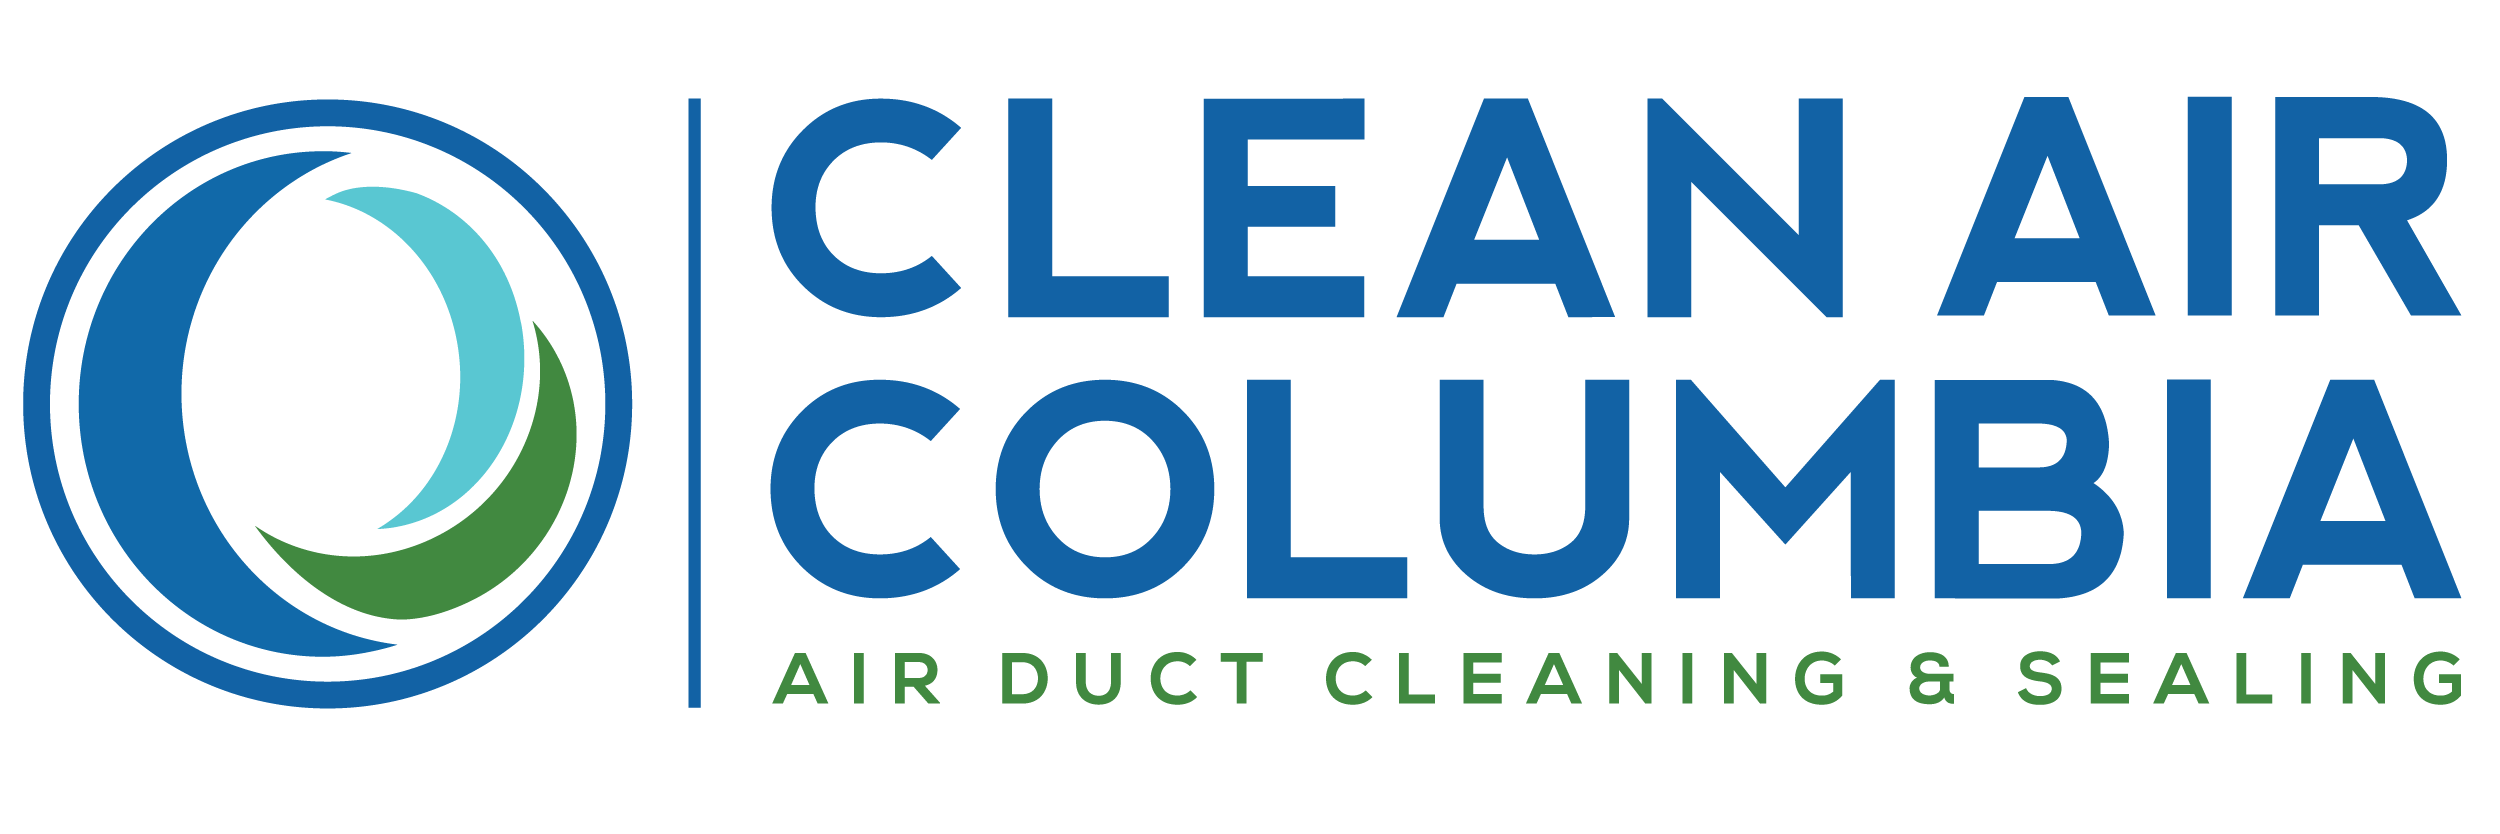 Clean-Air-Columbia-EST-web-01